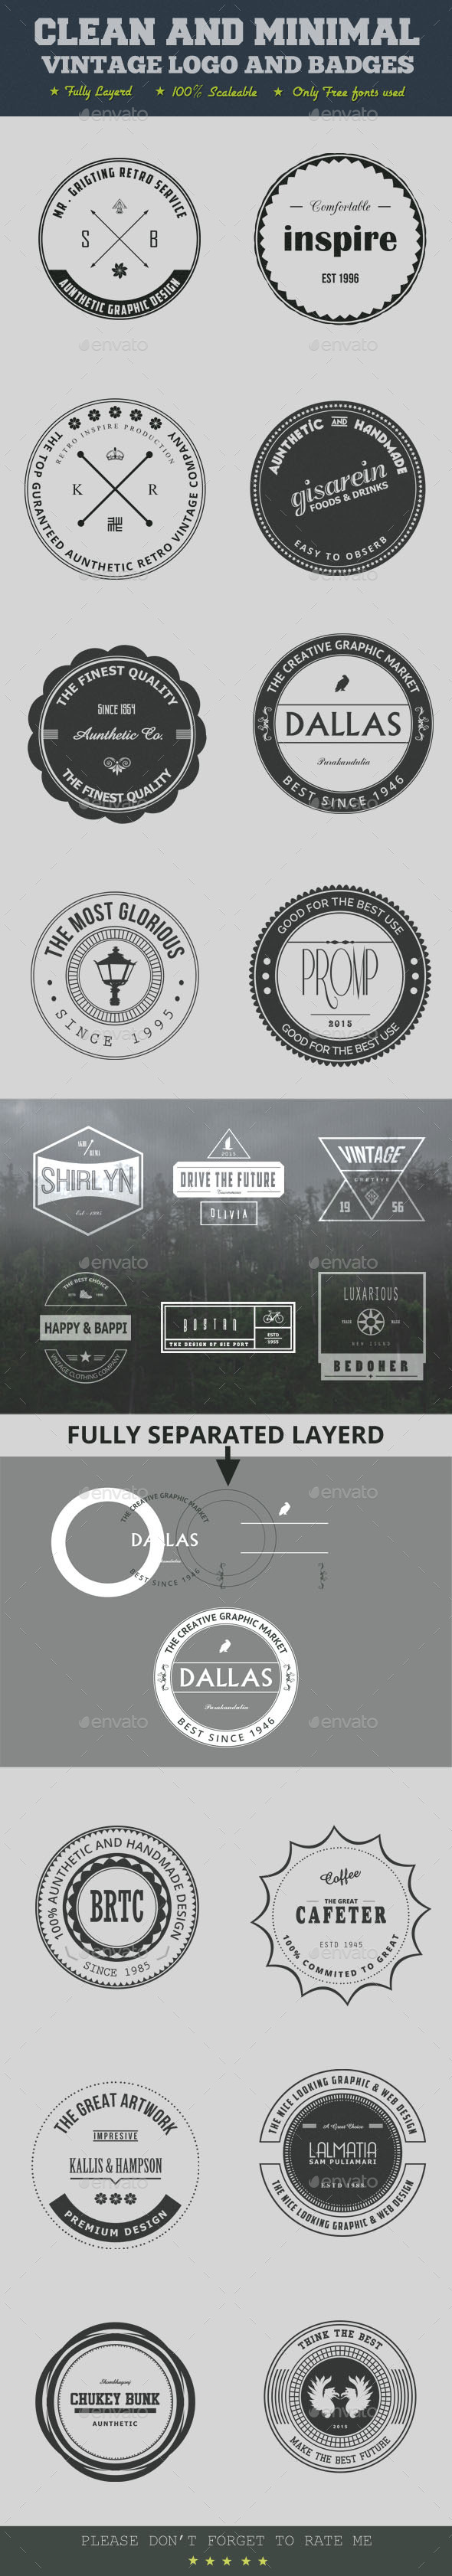 GraphicRiver Clean And Minimal Vintage Logo And Badges 9369091